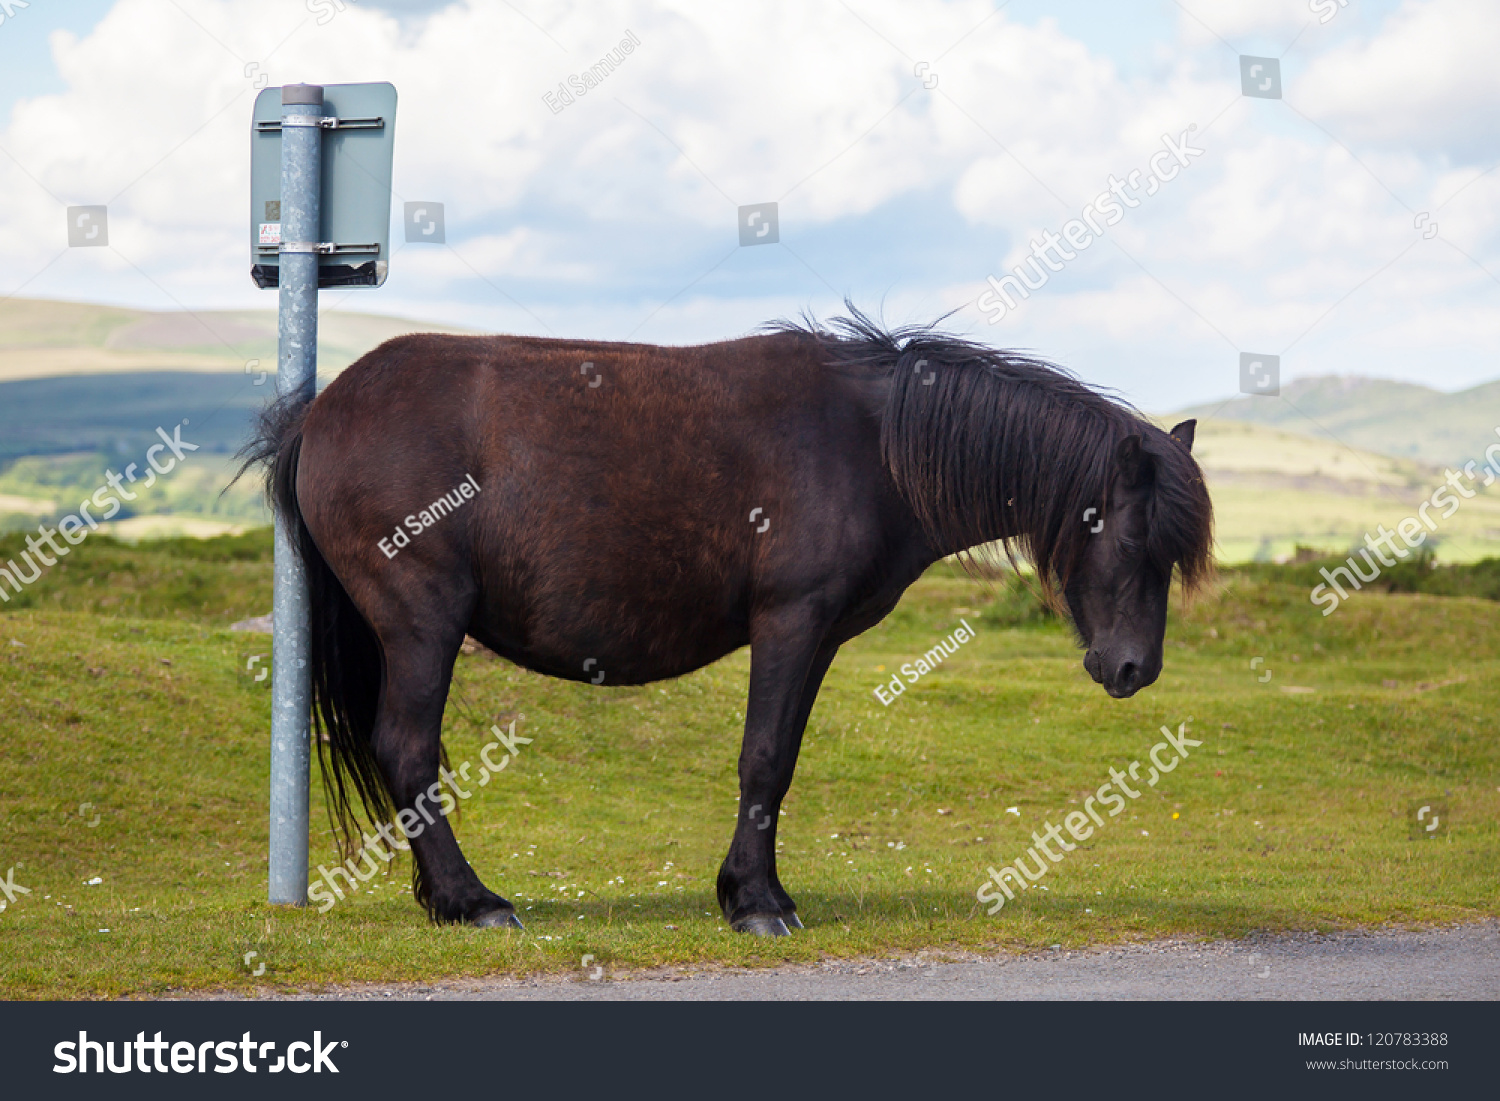 Horse Humor Horse Pony Scratching On Stock Photo Edit Now 120783388